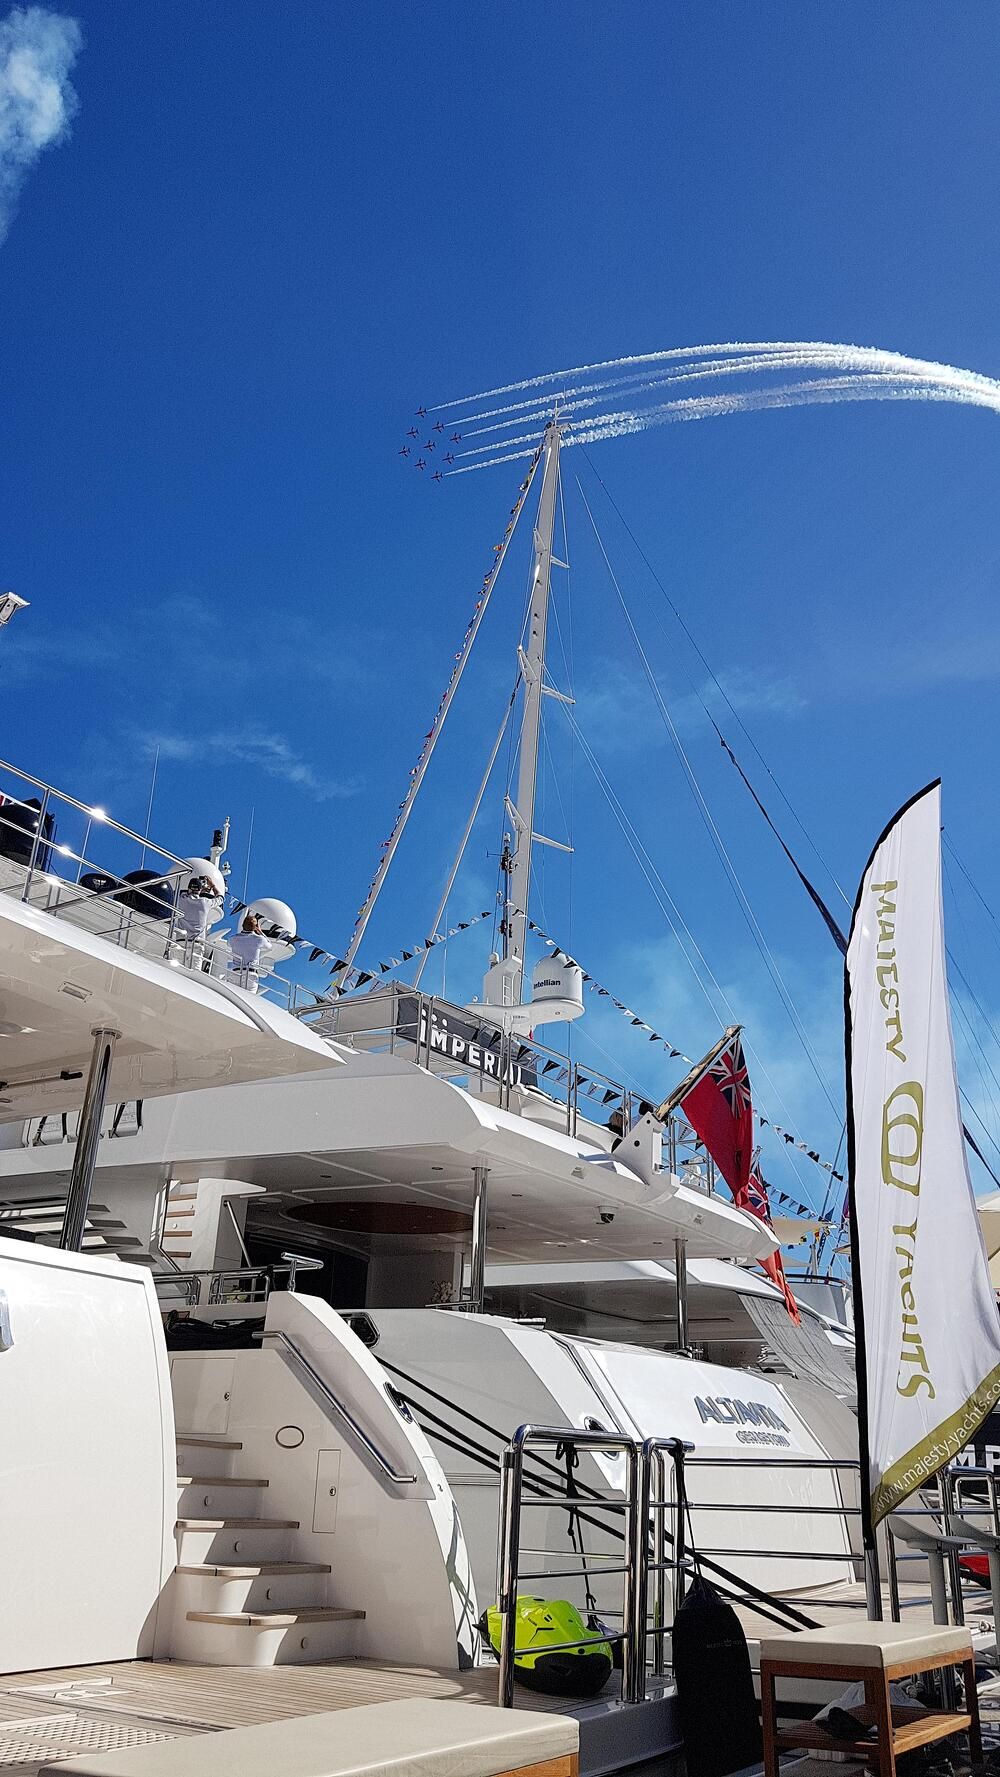 Gulf Craft at the 2018 Monaco Yacht Show-Day 2